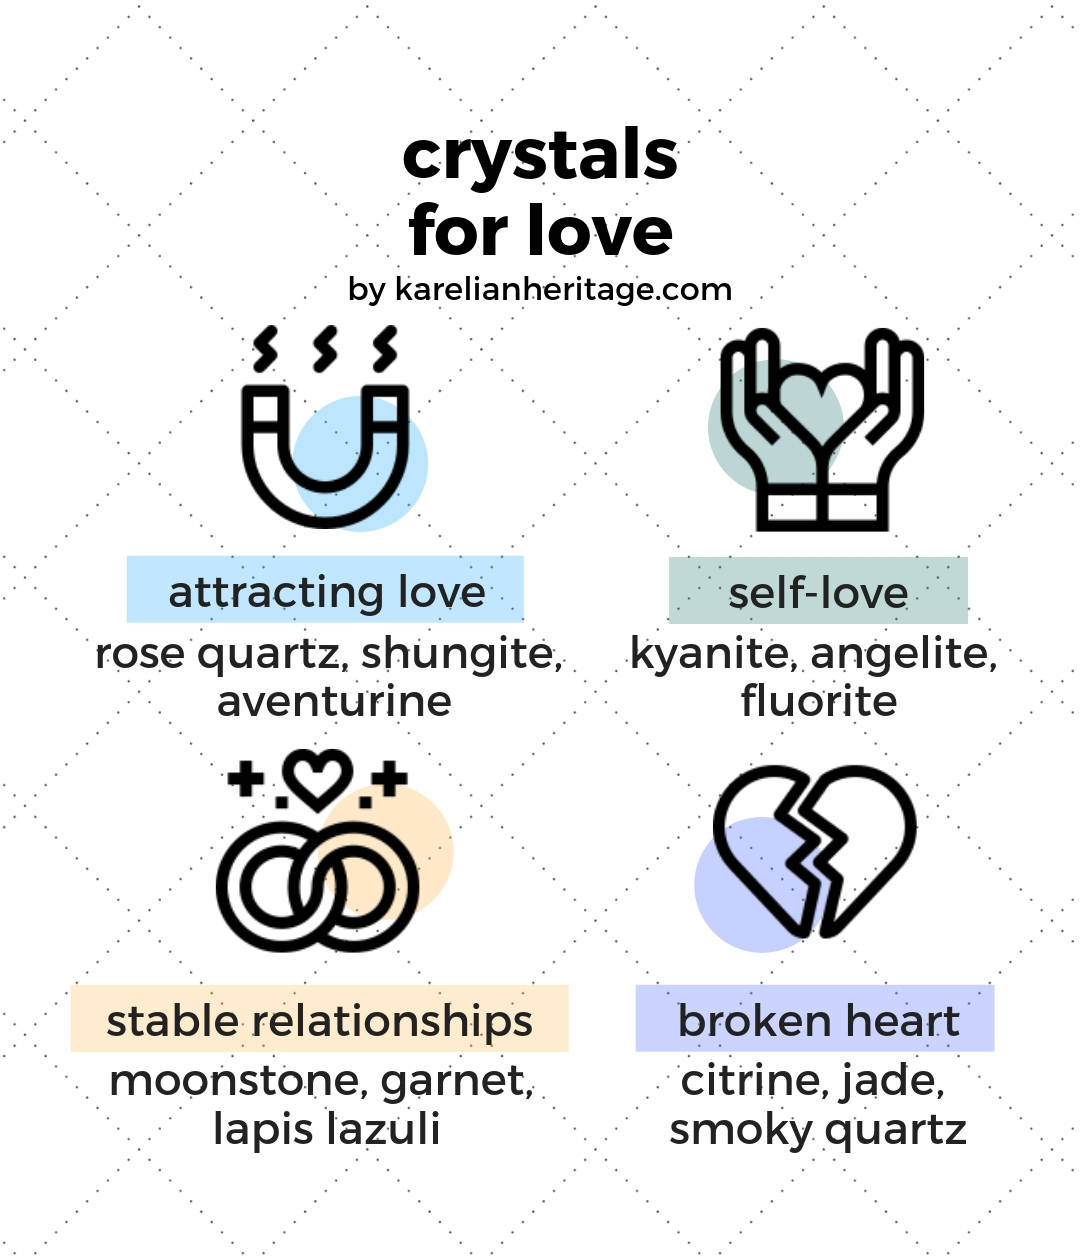 healing-crystals-for-love-attraction